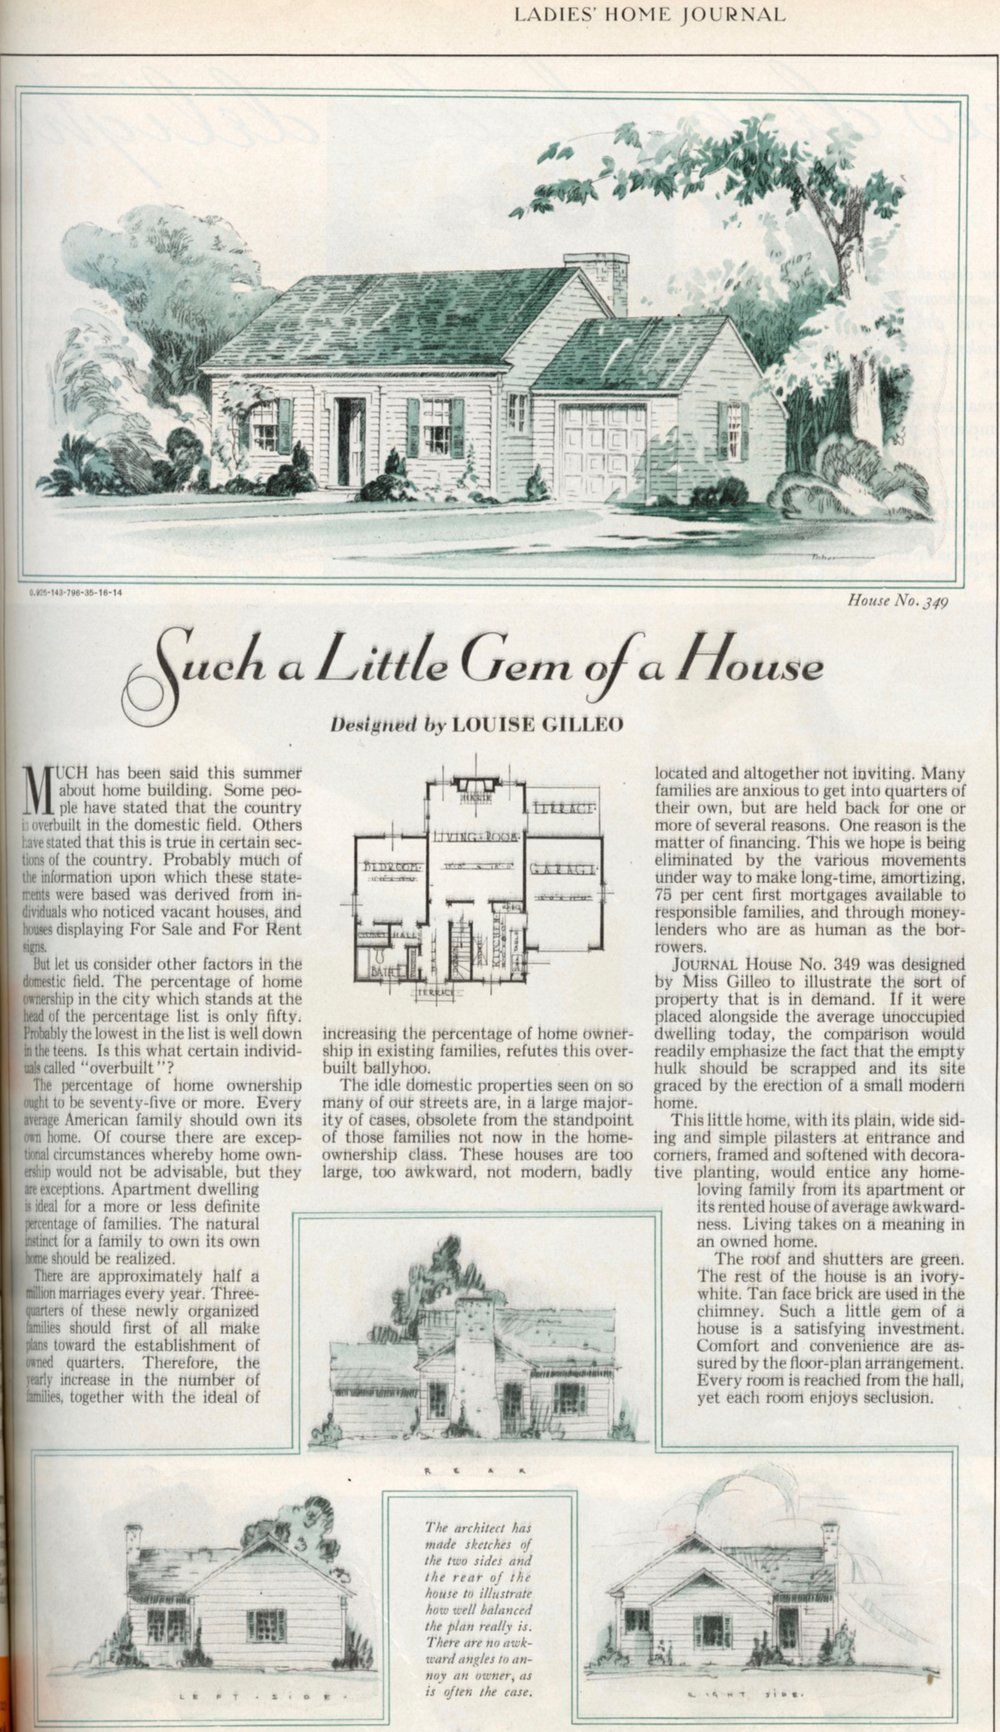 Ladies Home Journal December 1932, page 258.